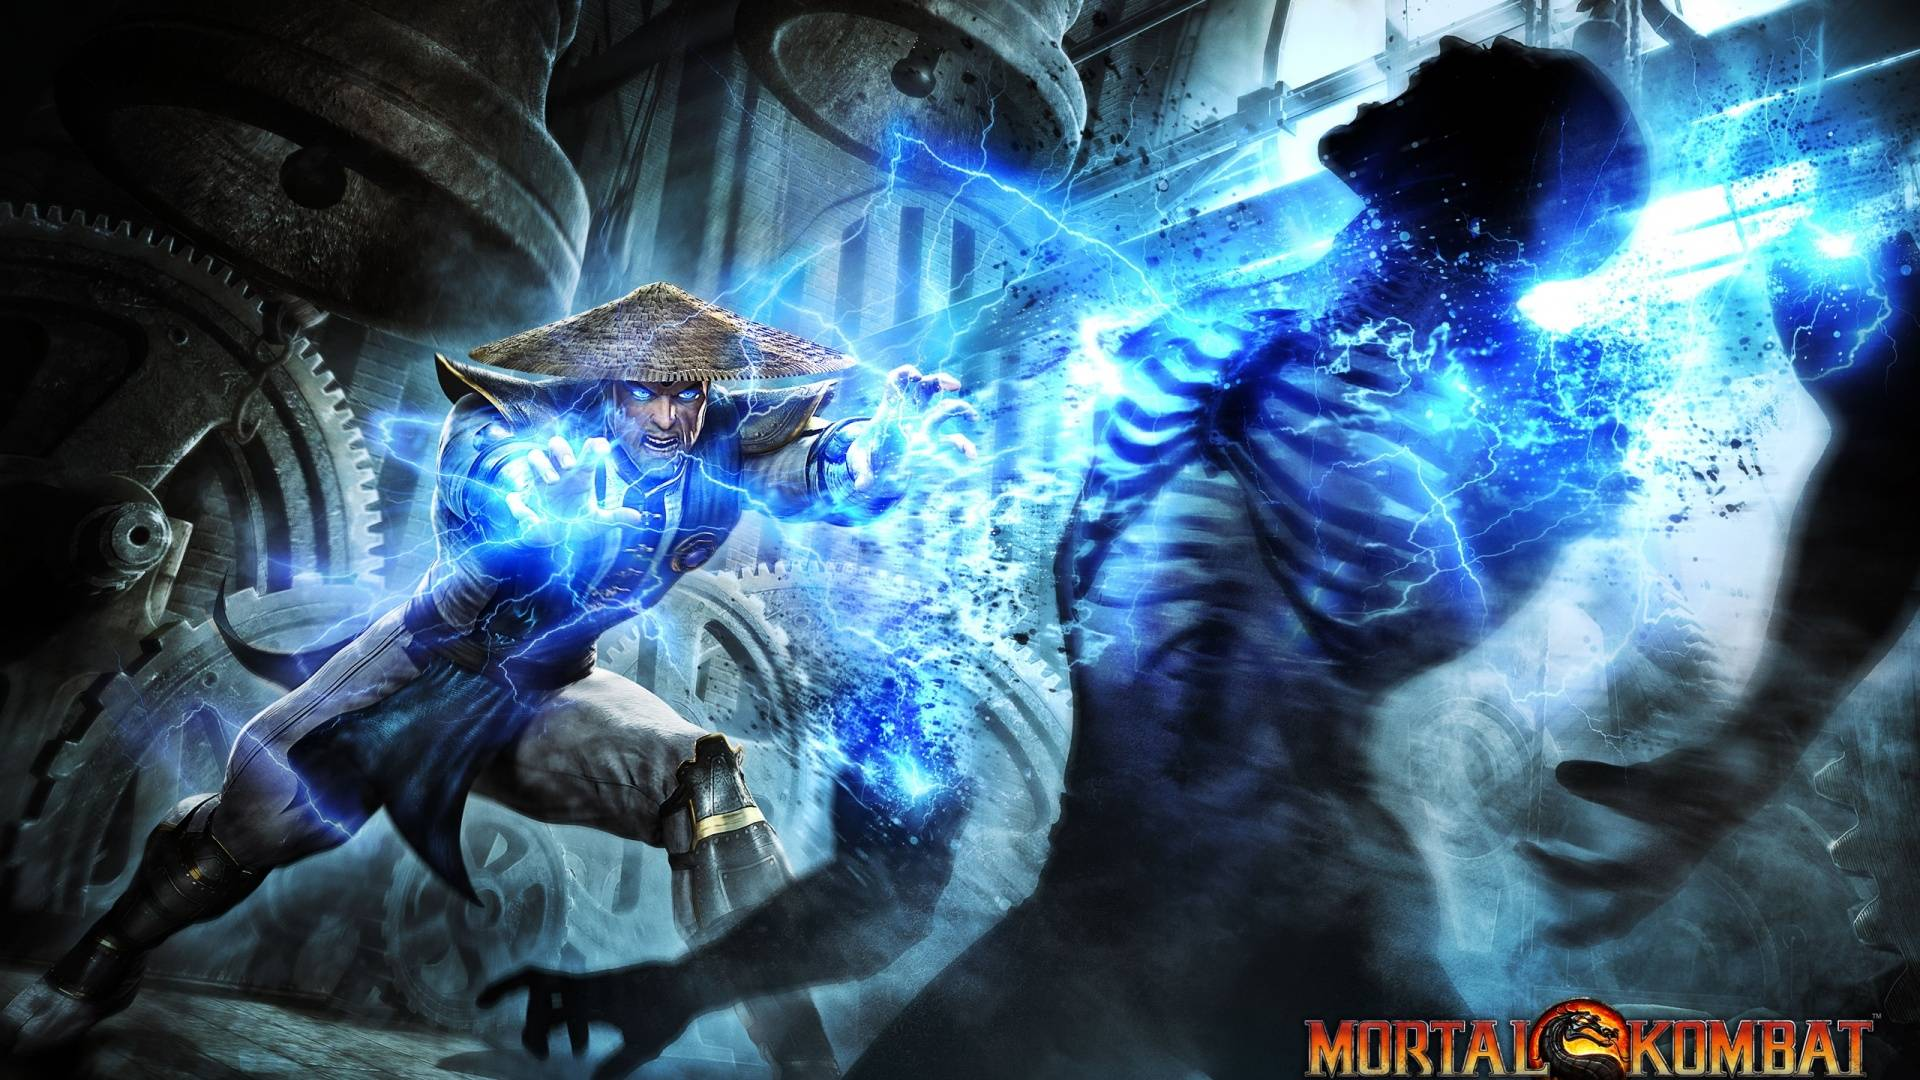 mortal kombat wallpapers in full 1080p hd « video game news, reviews